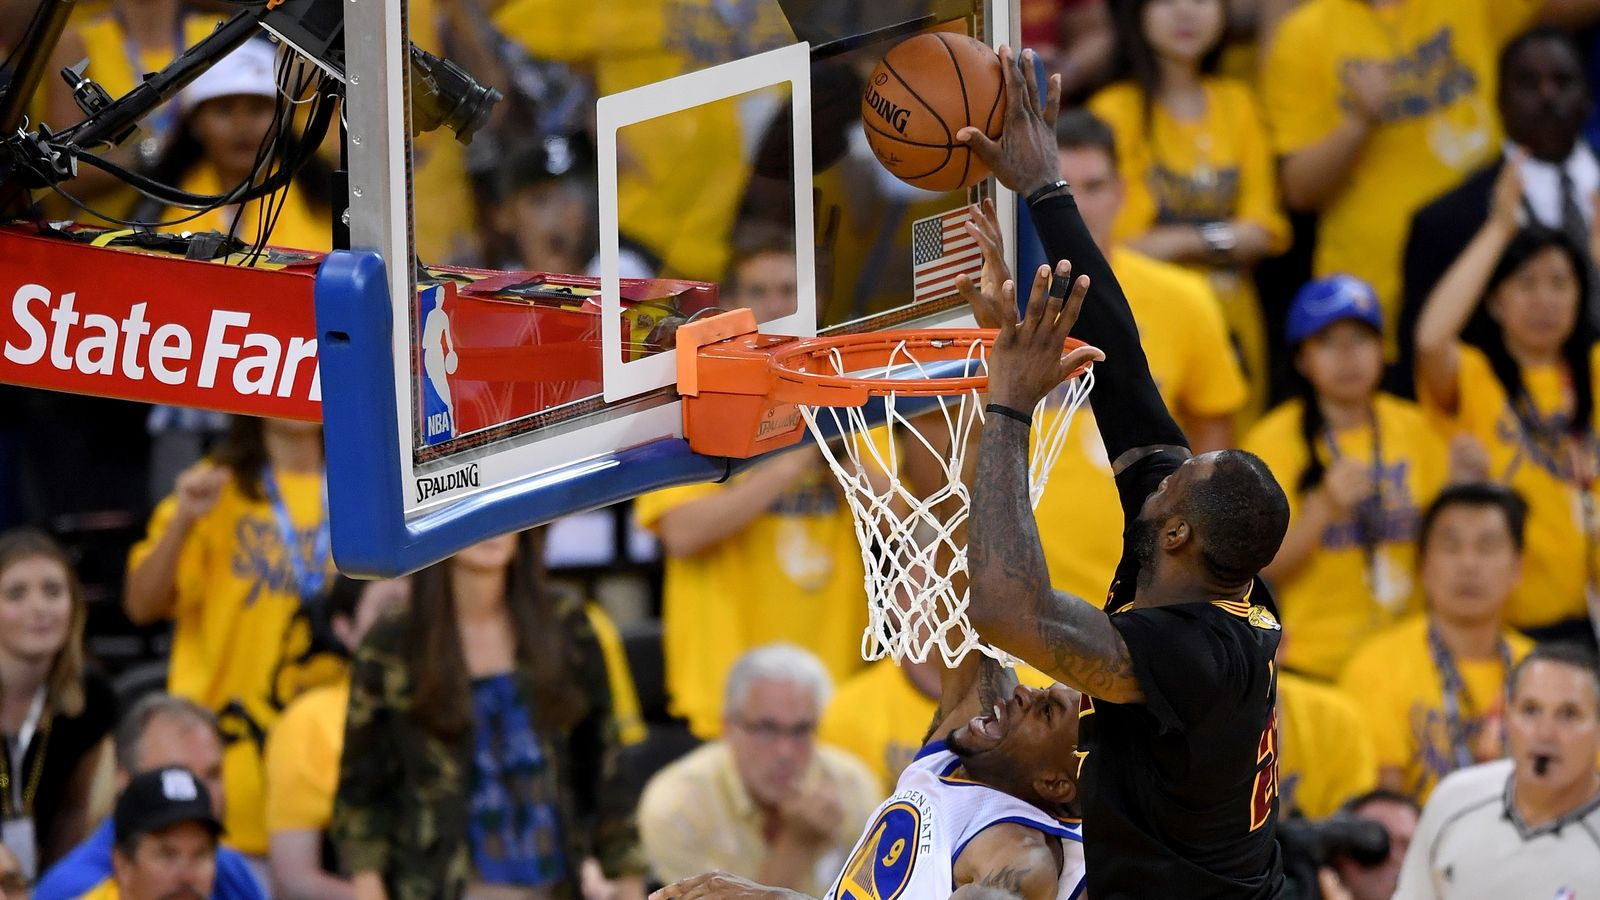 The Block.  LeBron seals the Cavs victory over the Warriors in the 2016 NBA Finals. This play has its own  Wikipedia  page.